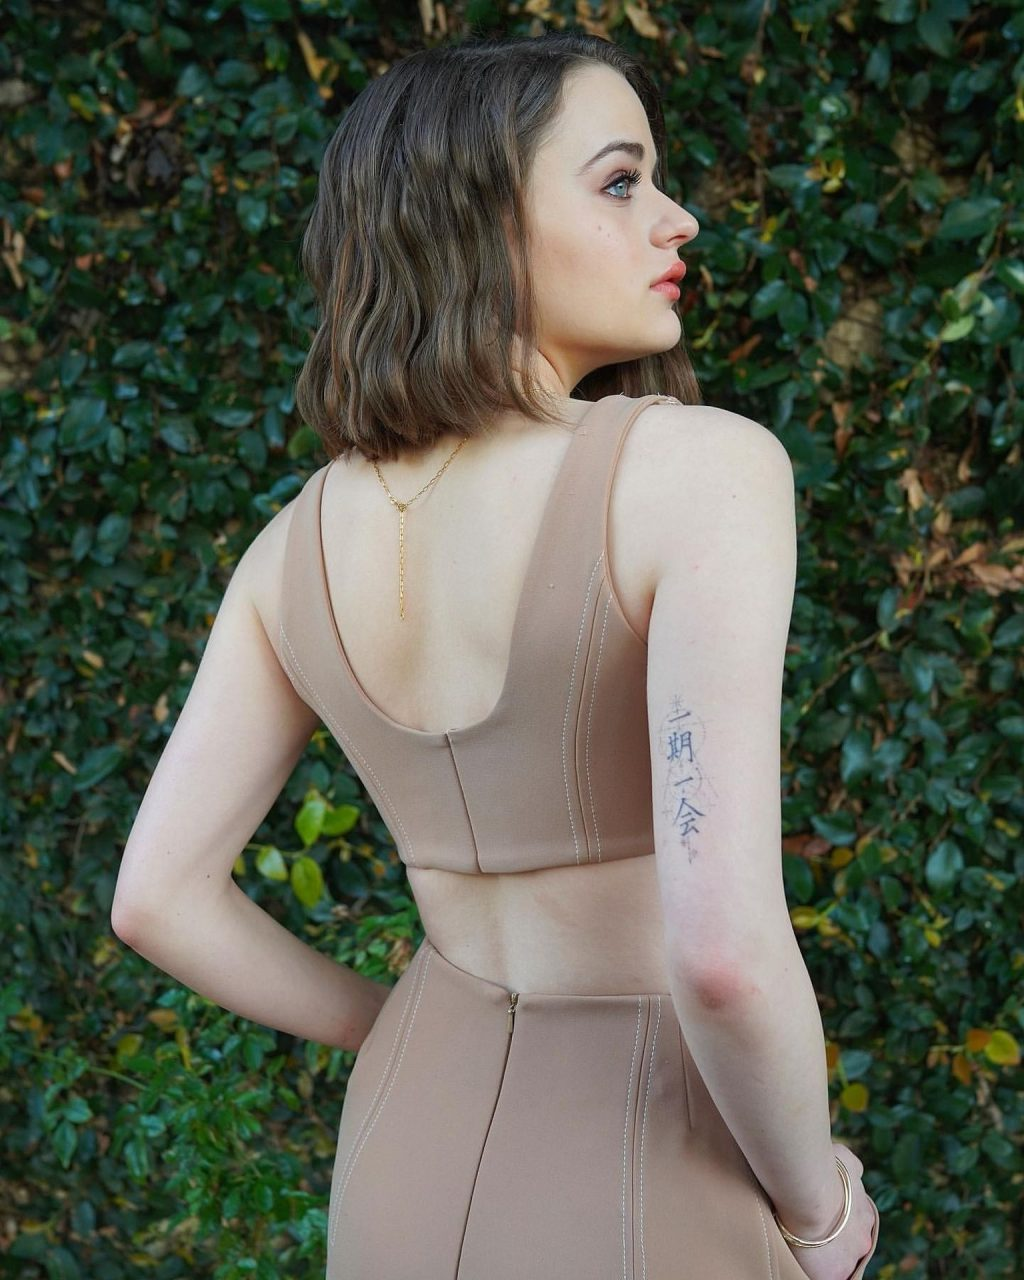 Joey King Flaunts Her Cleavage at the 2020 SAG Red Carpet Rollout (55 Photos)